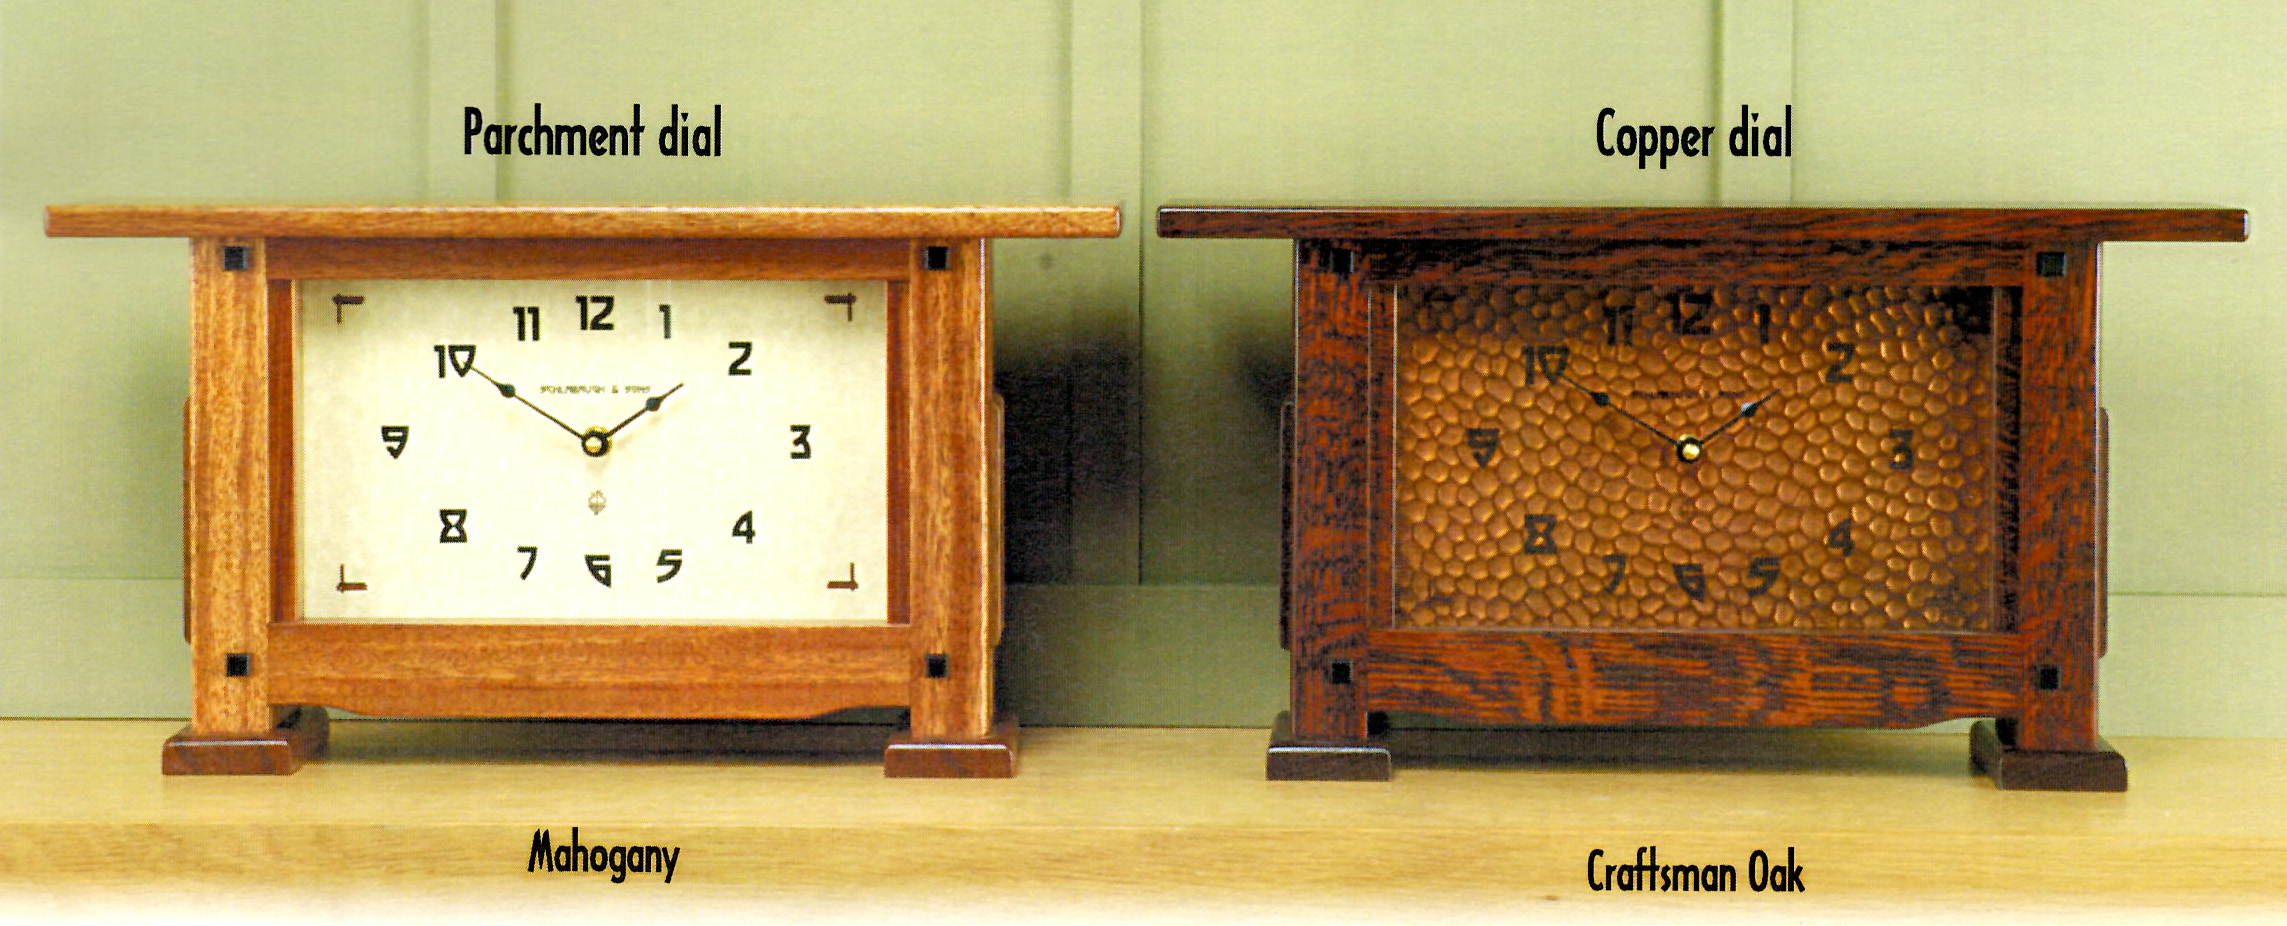 Arts and crafts mantle clock - Many Of The Clocks Listed Below Come In The Finishes Listed Above With Either The Copper Dial Or Parchment Dial Shown Below